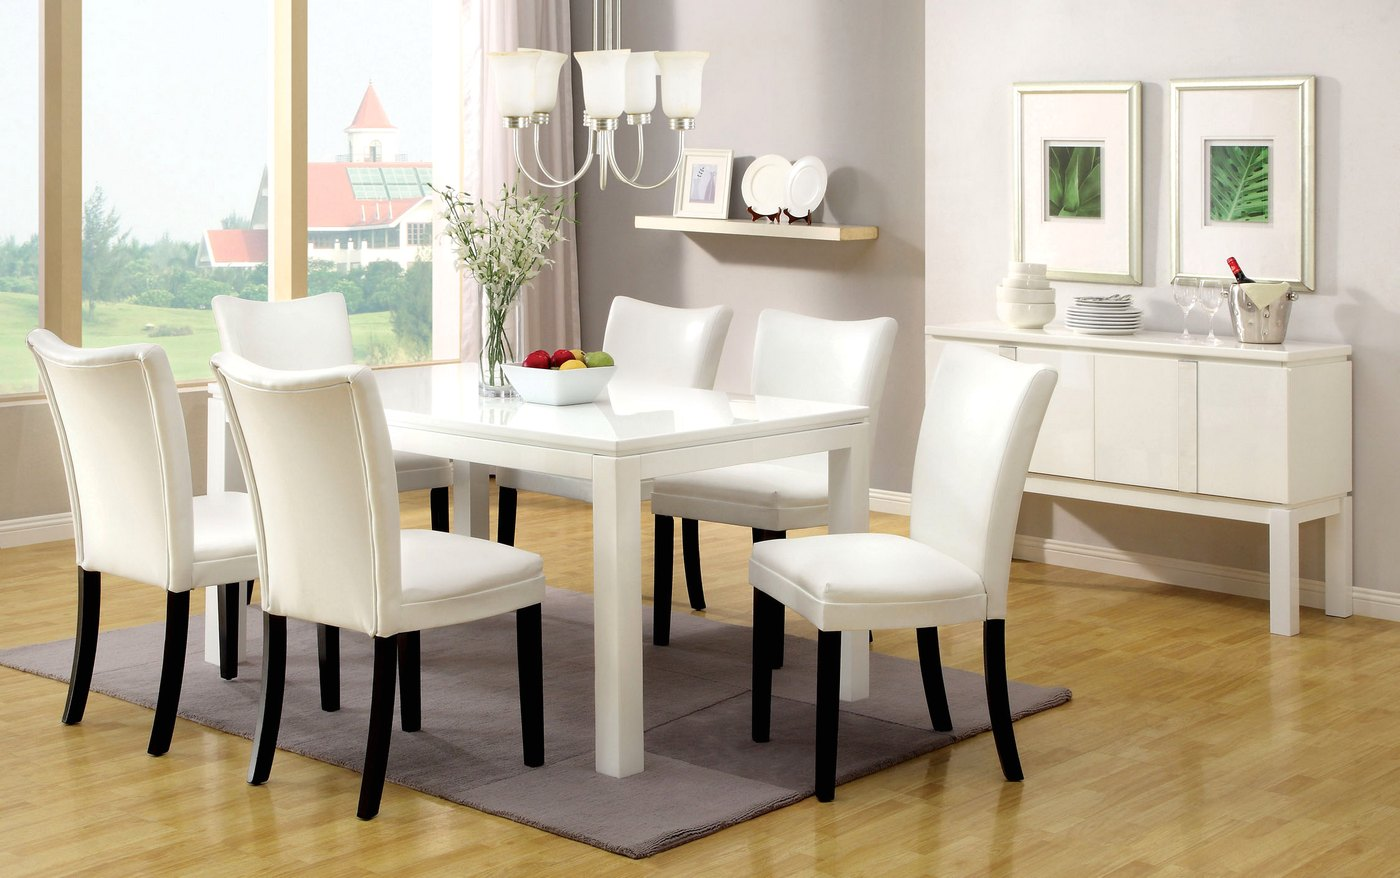 Lamia i contemporary white casual dining set with for White casual dining table